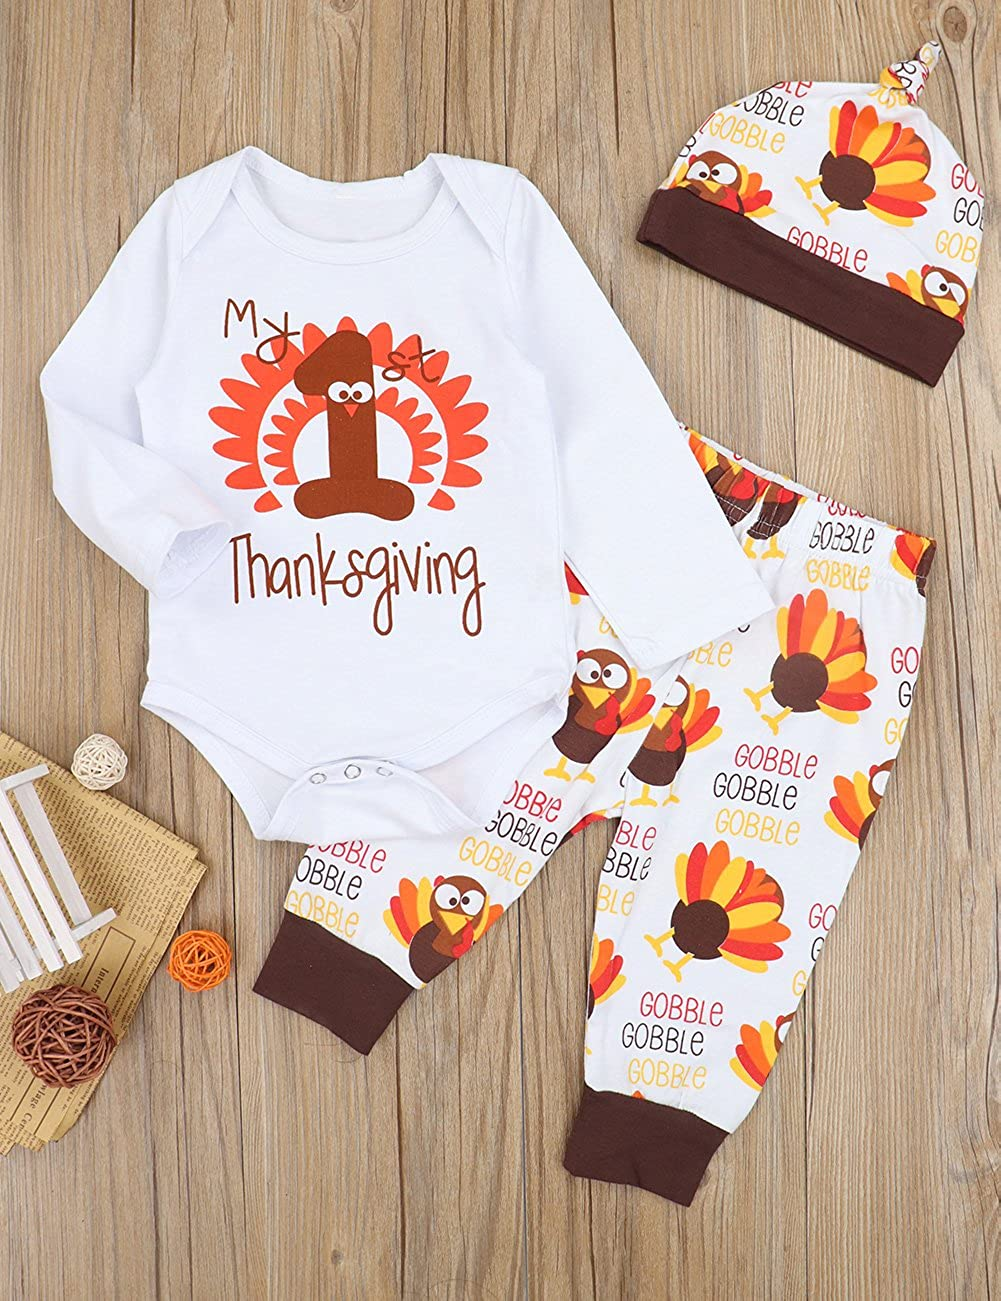 35ade38aa Amazon.com: 3PCs My First Thanksgiving Outfits Newborn Baby Boy Girl  Clothes Thanksgiving Romper, Turkey Pants + Hat Onesies Set: Clothing